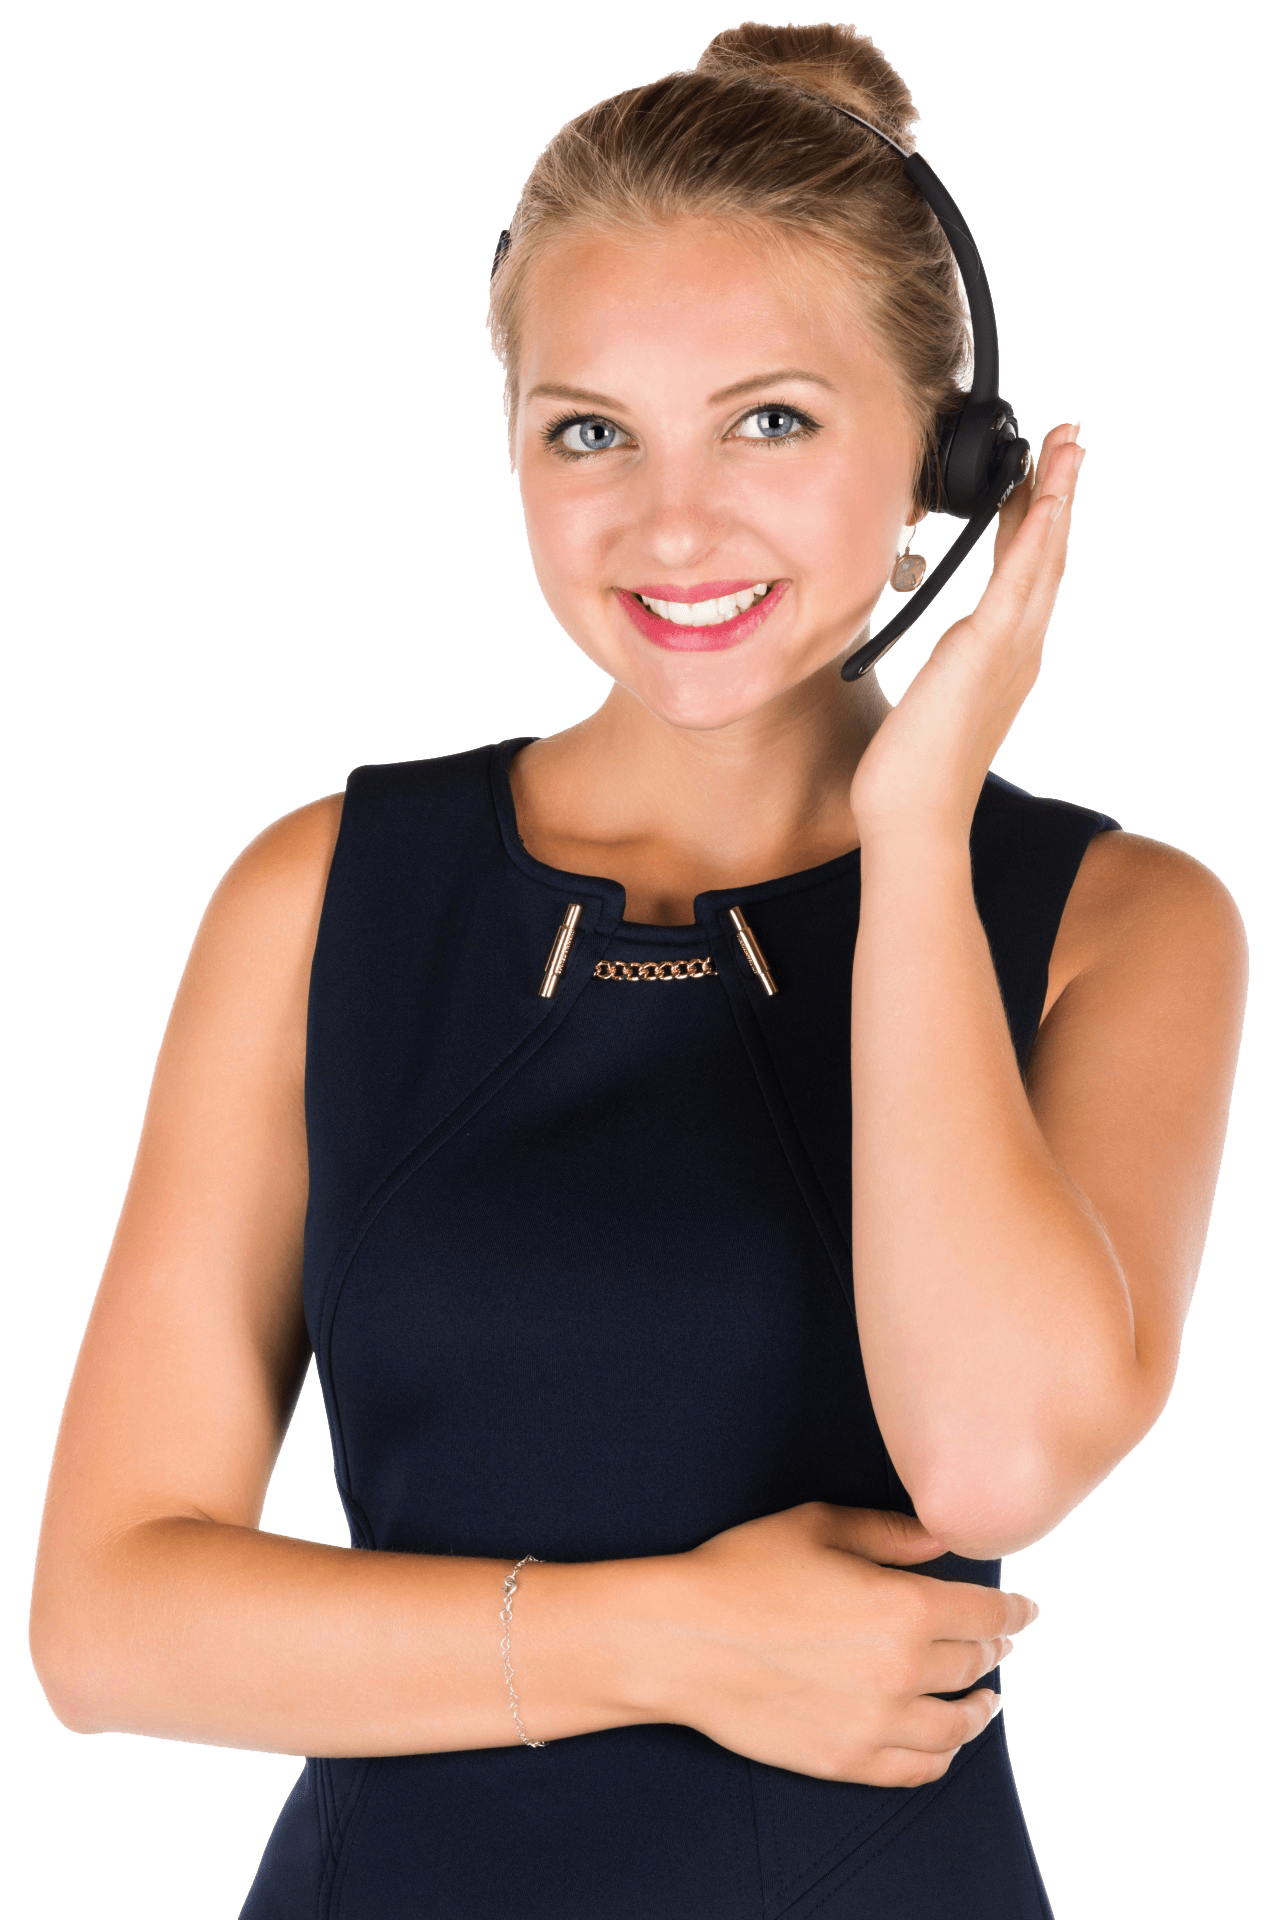 Phone Interviewed Leads